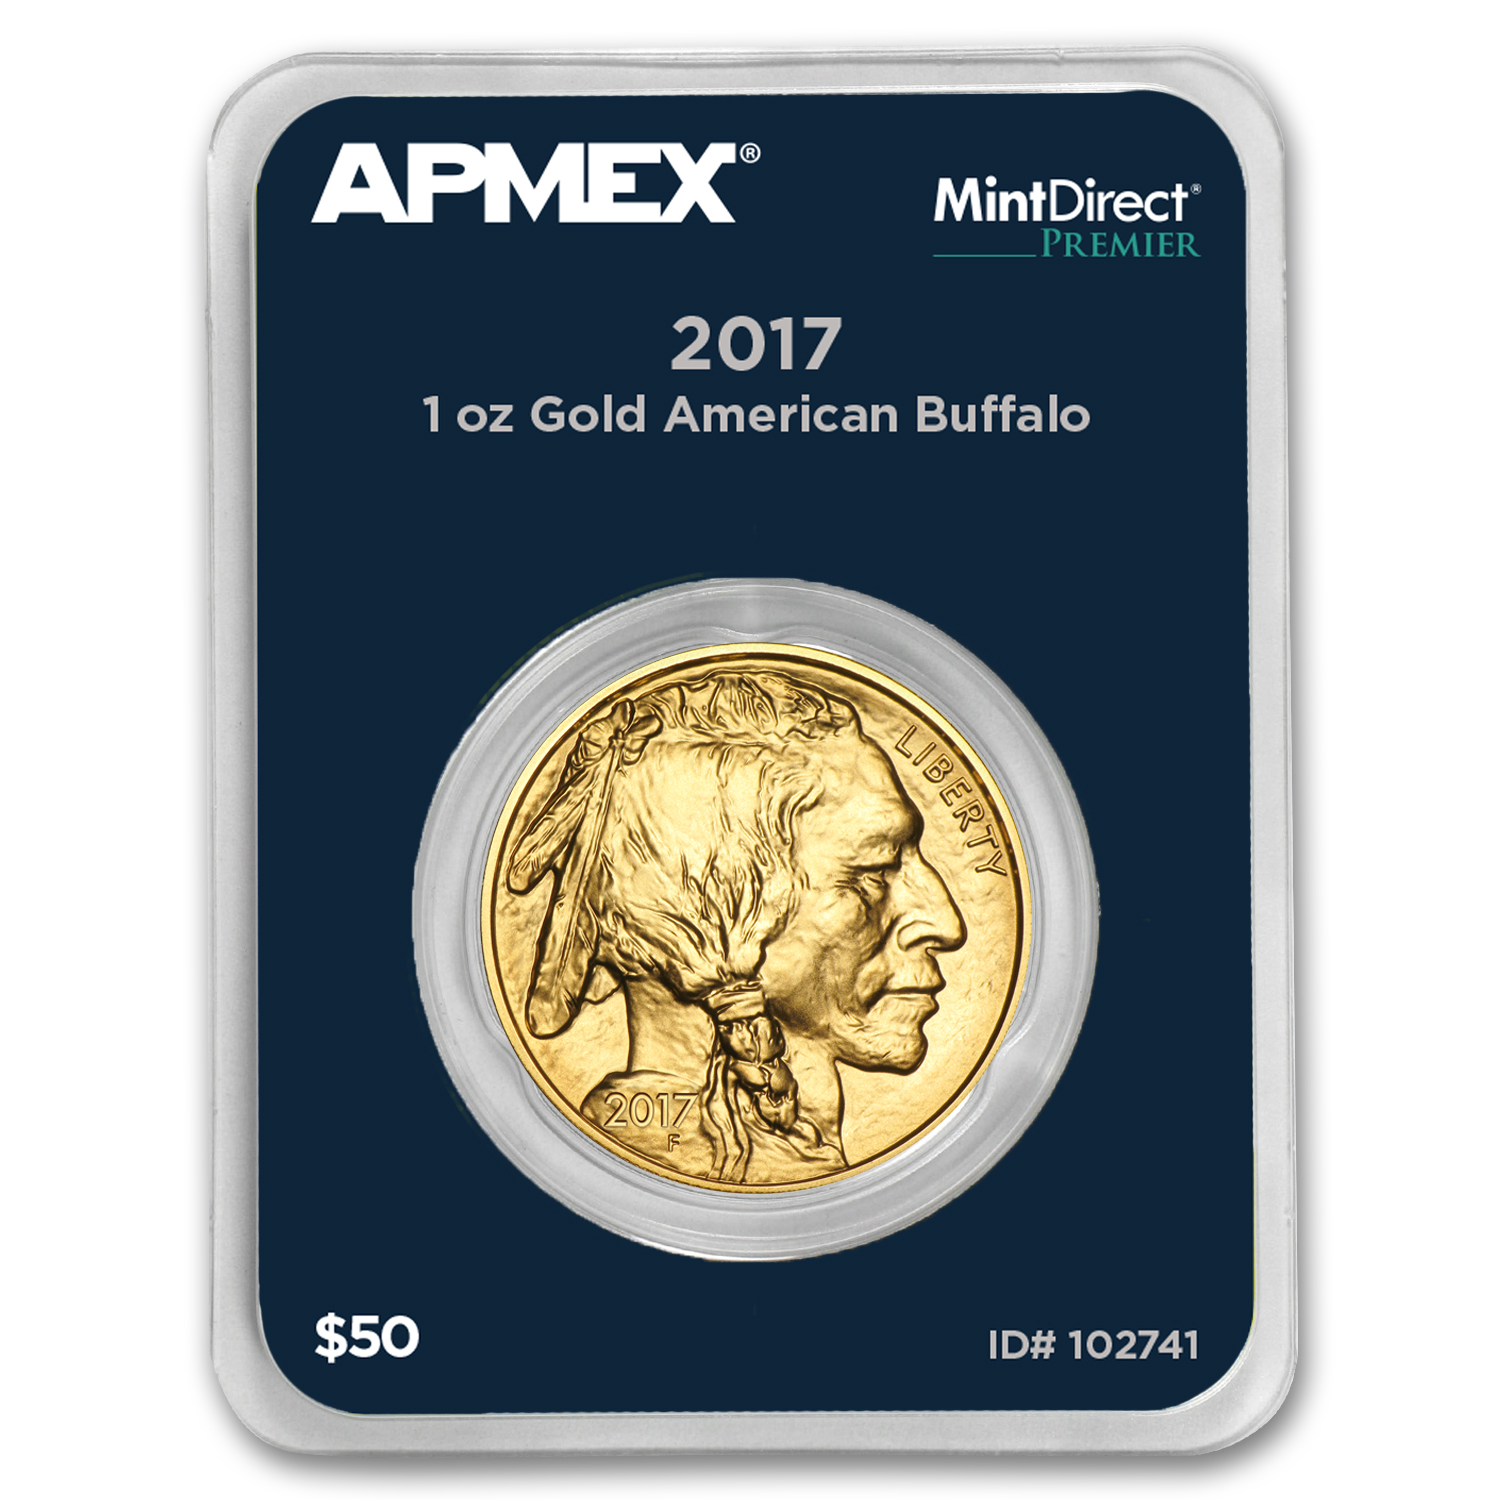 2017 1 oz Gold Buffalo (MintDirect® Premier Single)